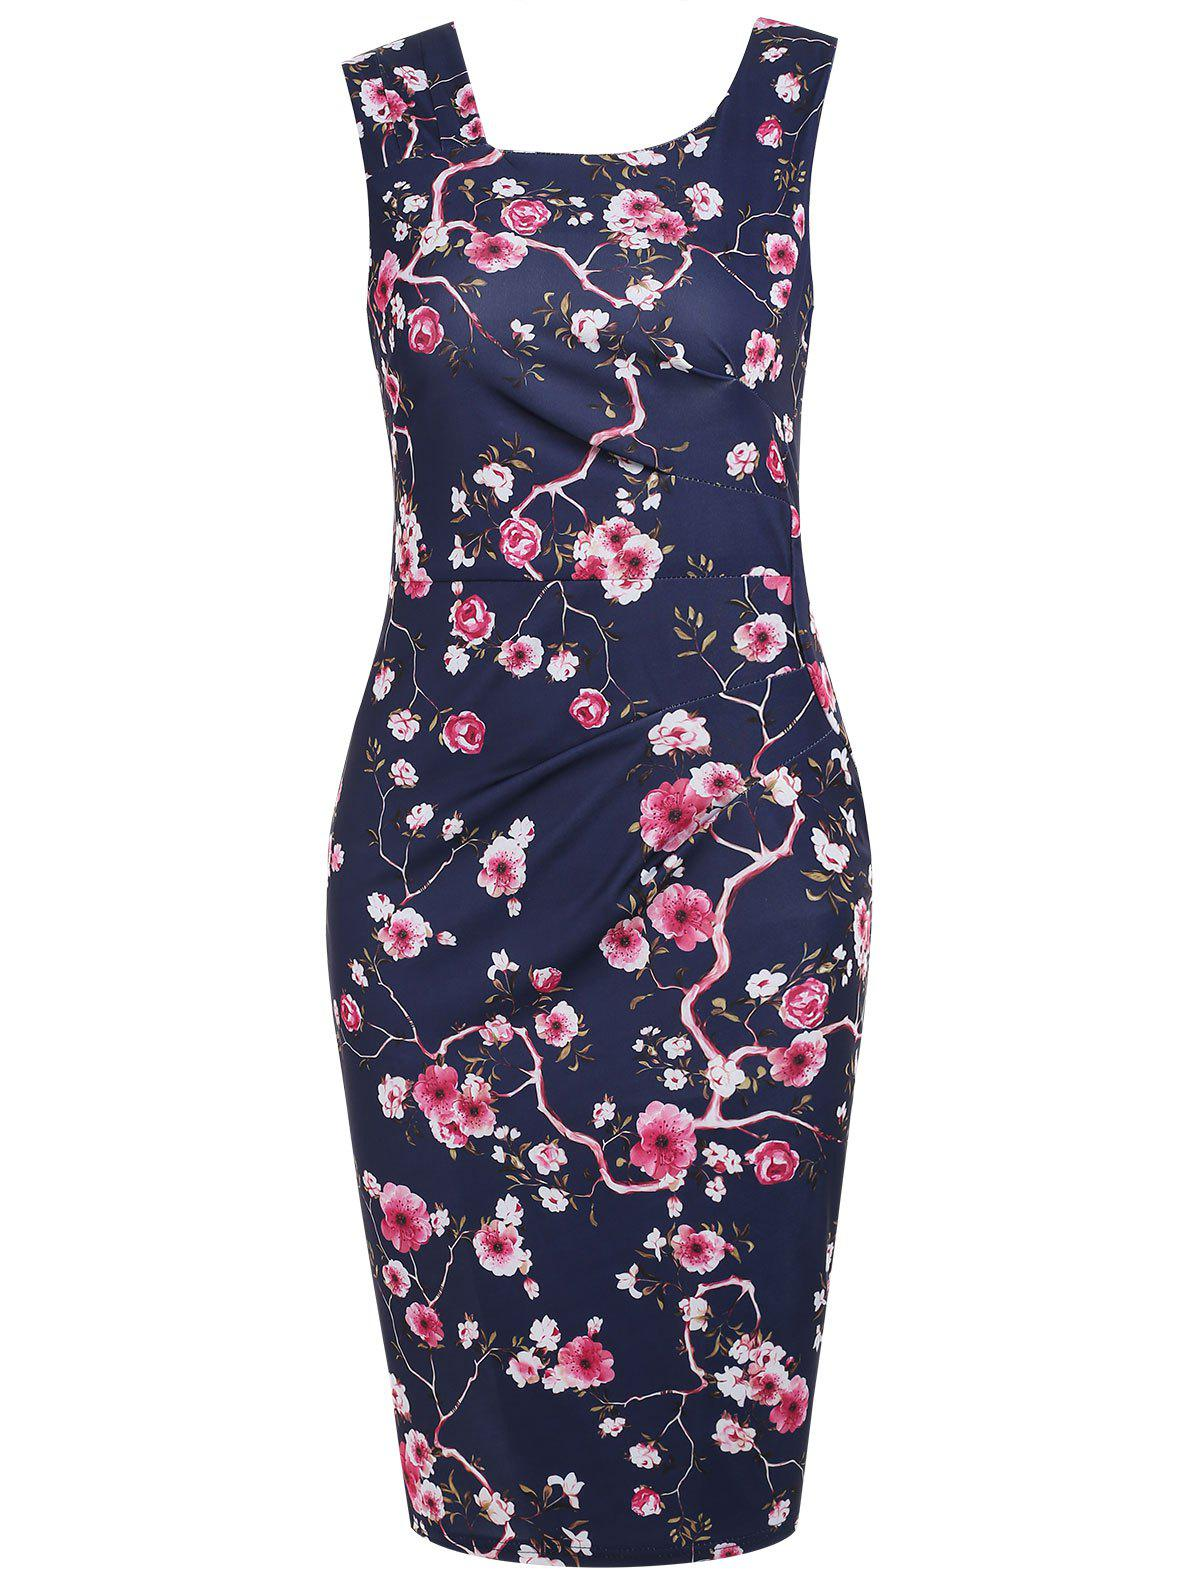 Store Floral Formal Knee Length Dress